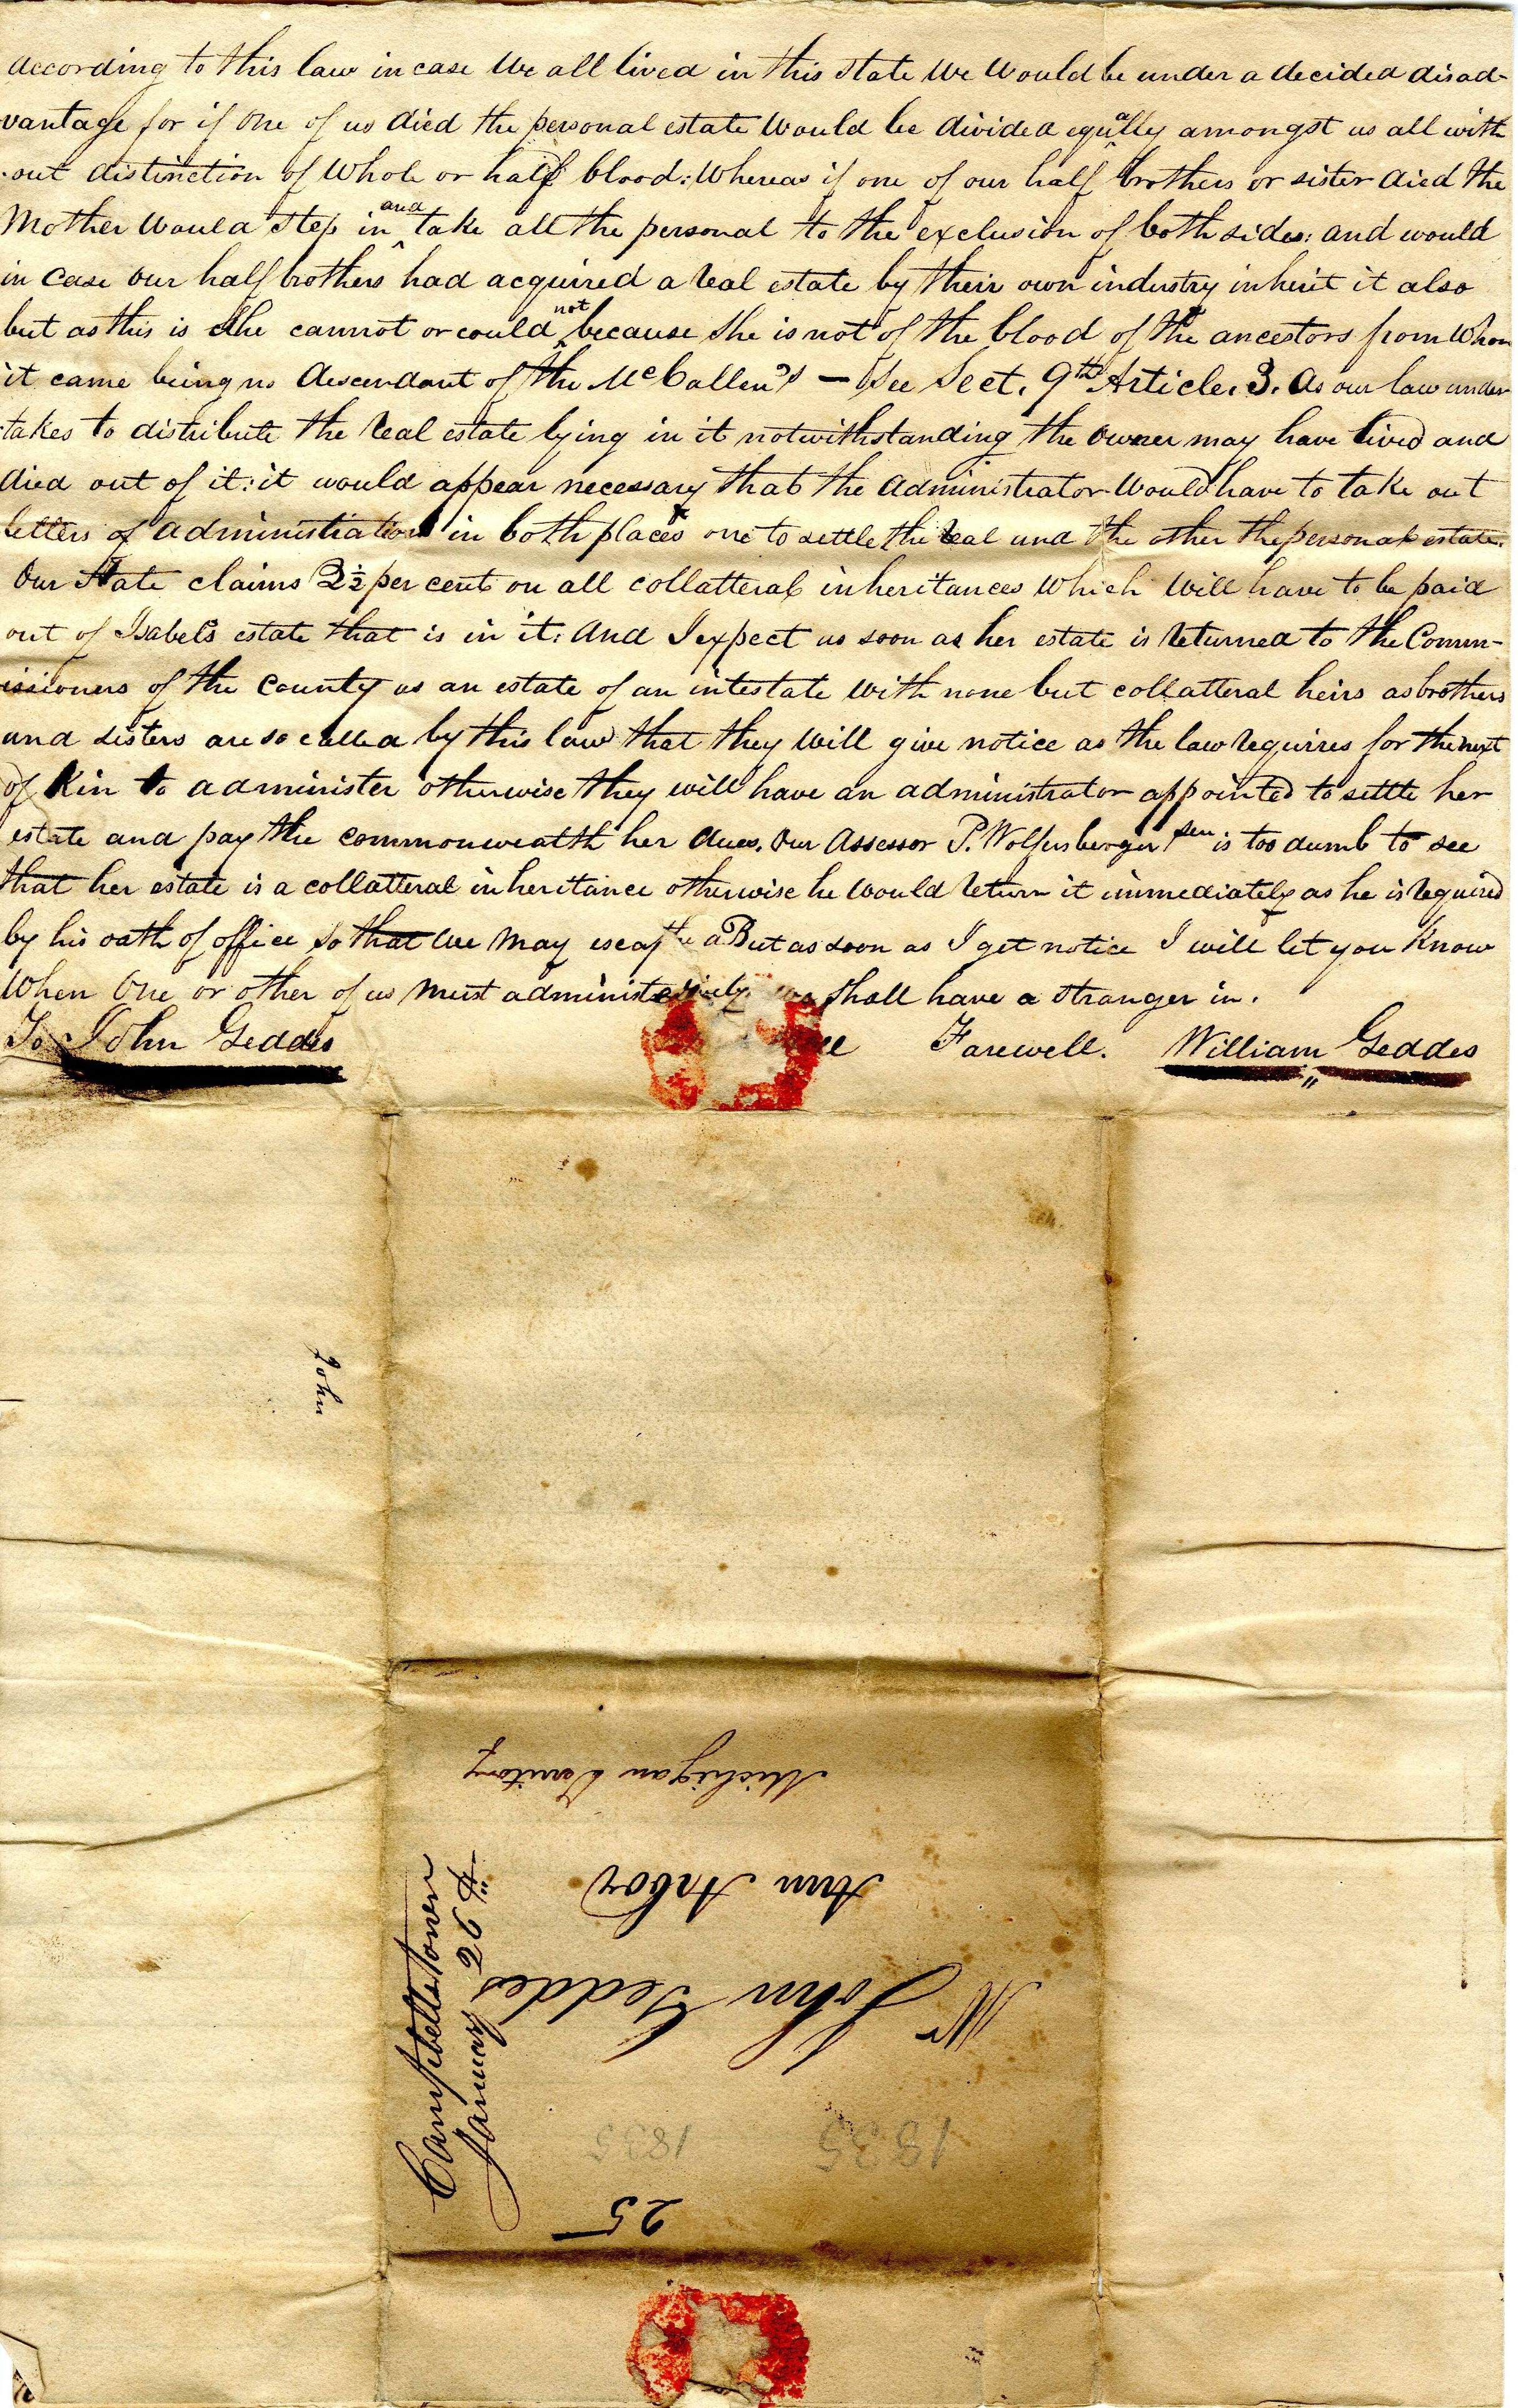 Letter From William  Geddes to John Geddes, January 30, 1835 image